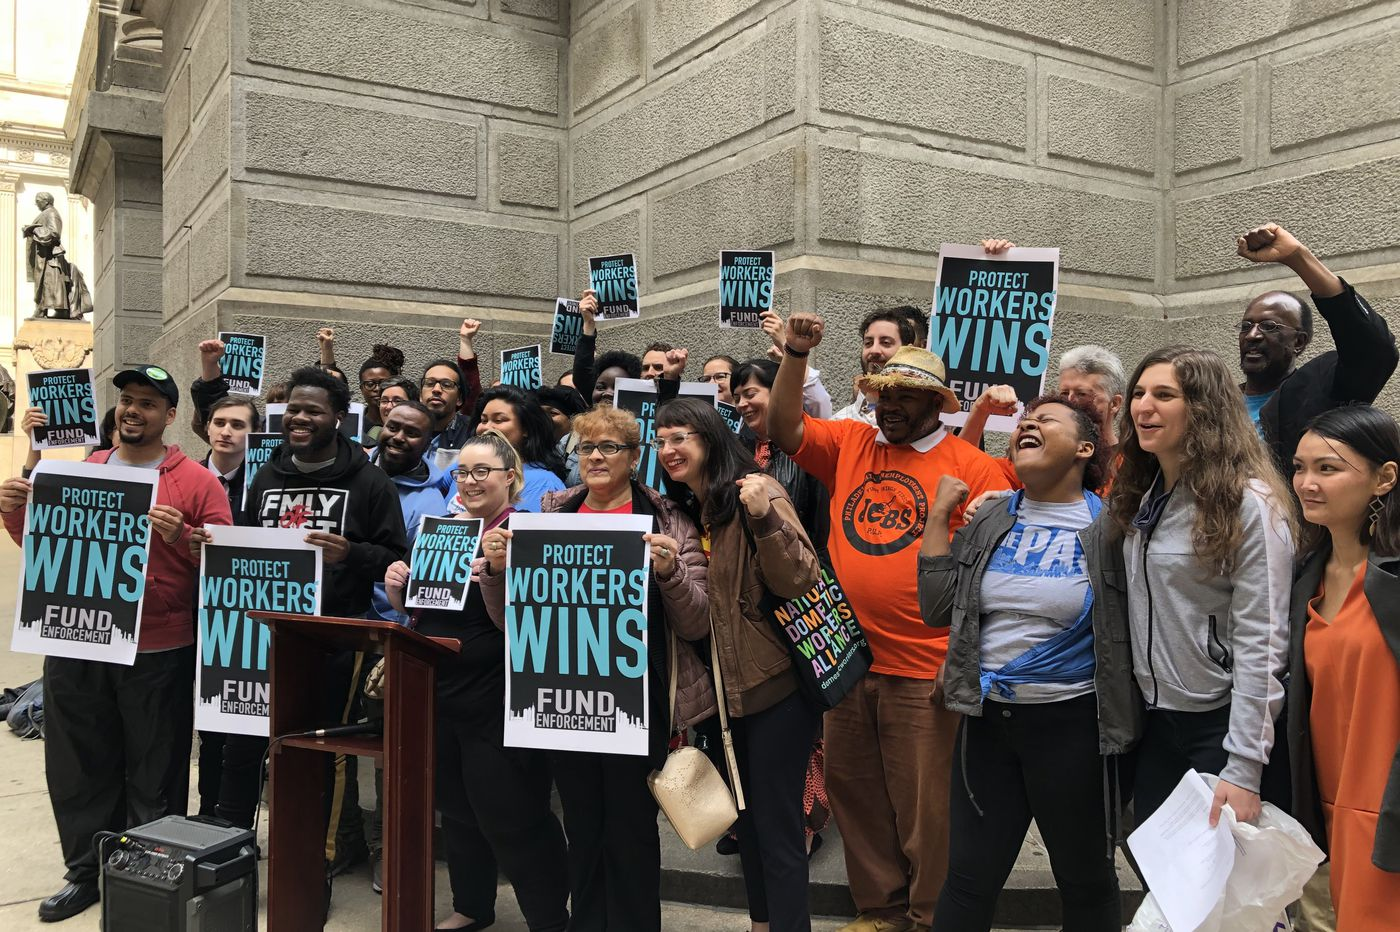 7 groups chased Council members around City Hall to make a plea for more labor enforcement funding